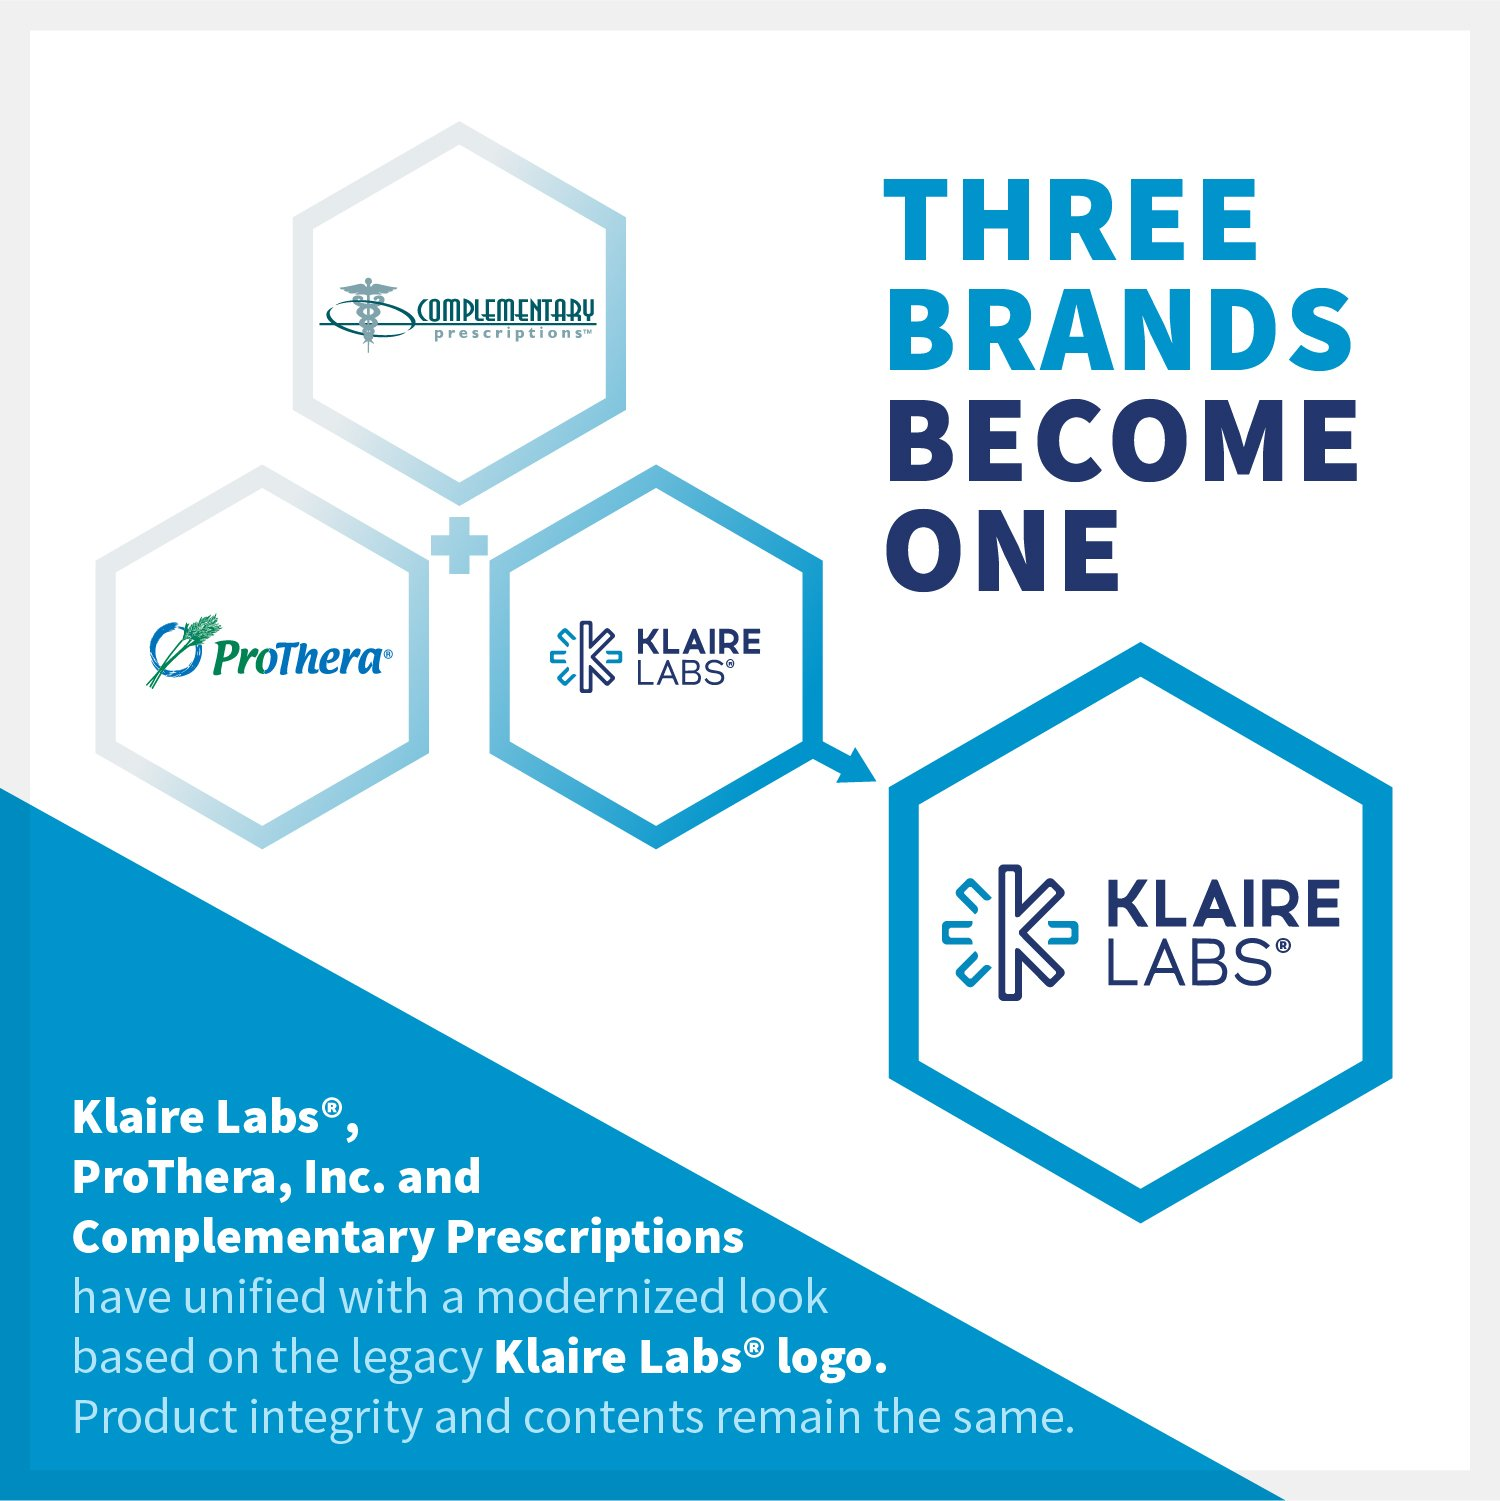 Klaire Labs Ultra K2 Menatetrenone - Hypoallergenic 15 mg (15000 mcg) Vitamin K2 MK4 for Cardiovascular & Bone Health, Soy & Gluten-Free (90 Capsules) by Klaire Labs (Image #3)